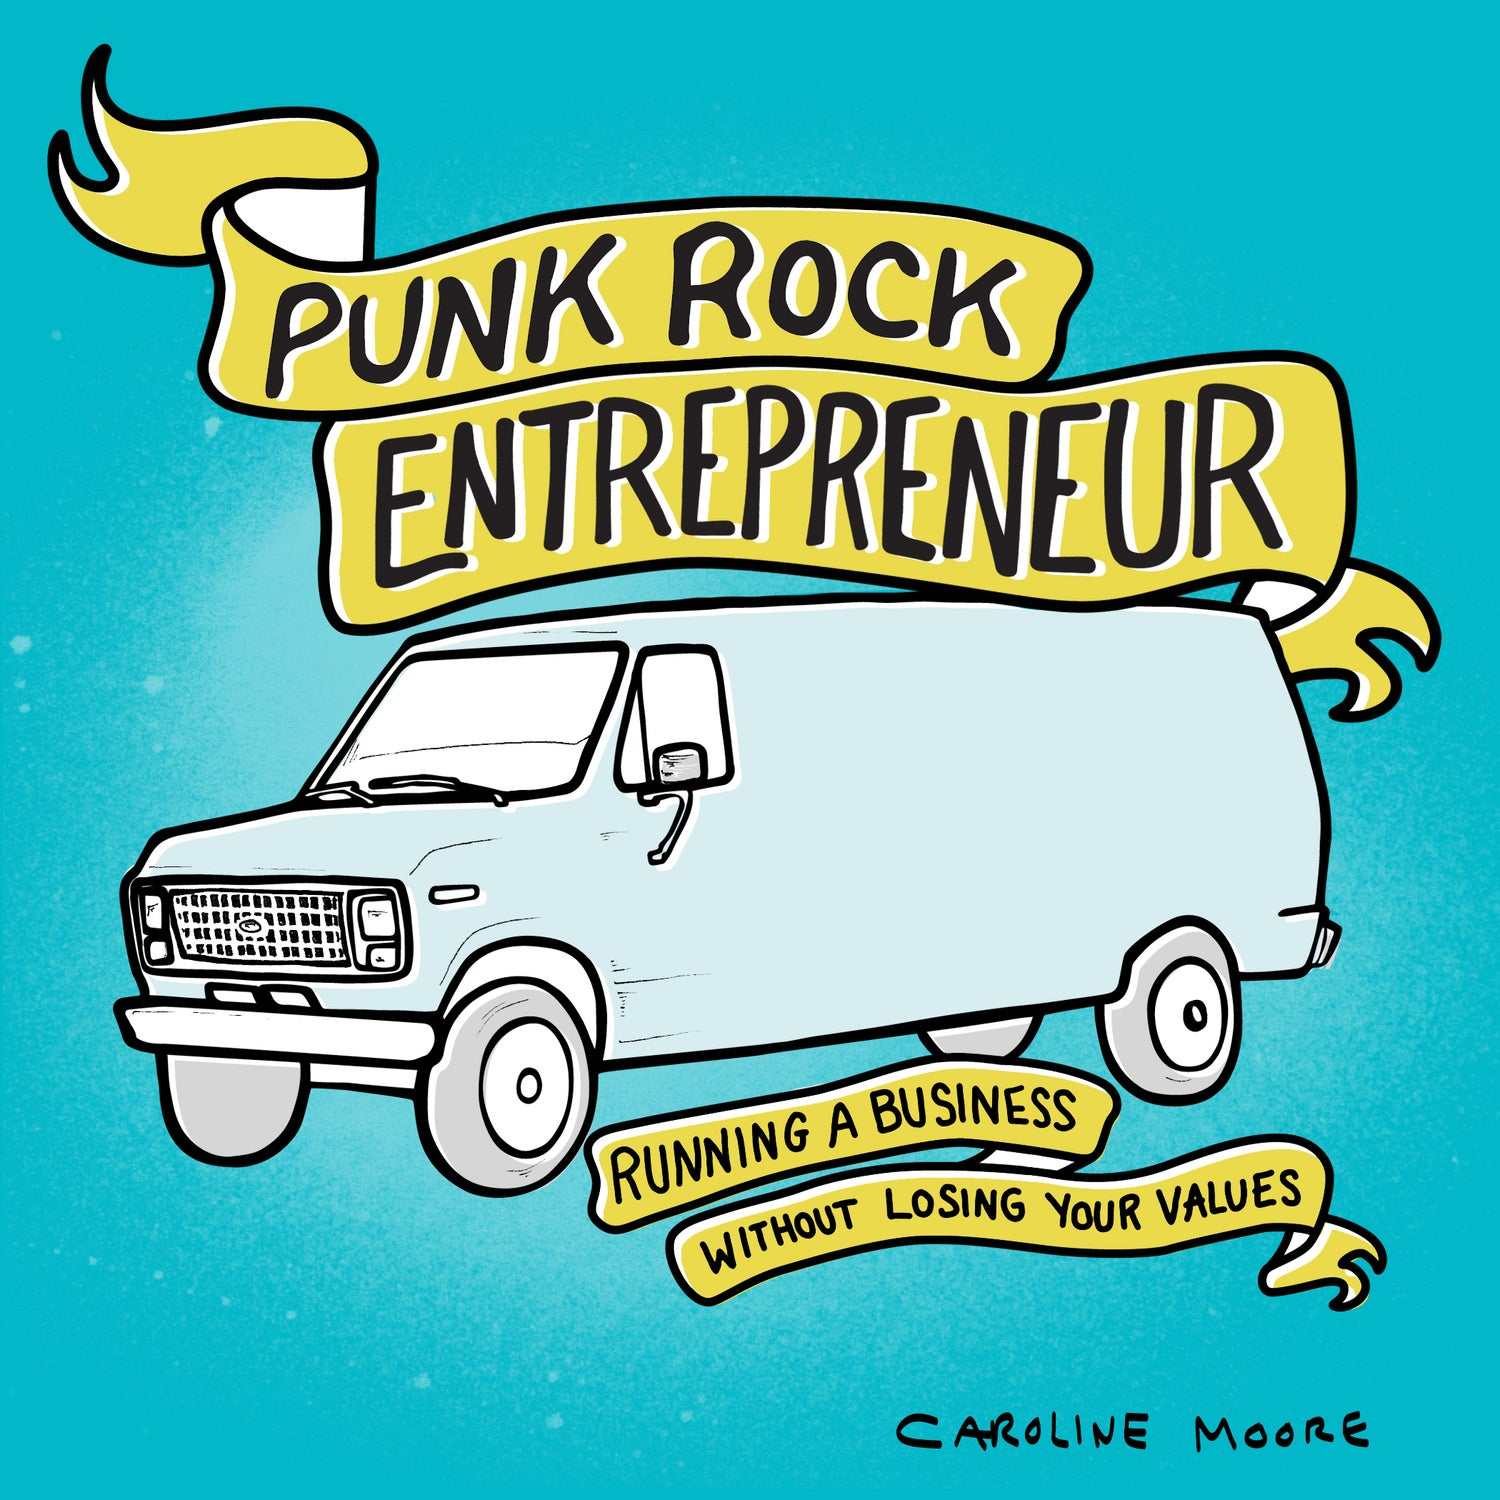 Image of Punk Rock Entrepreneur